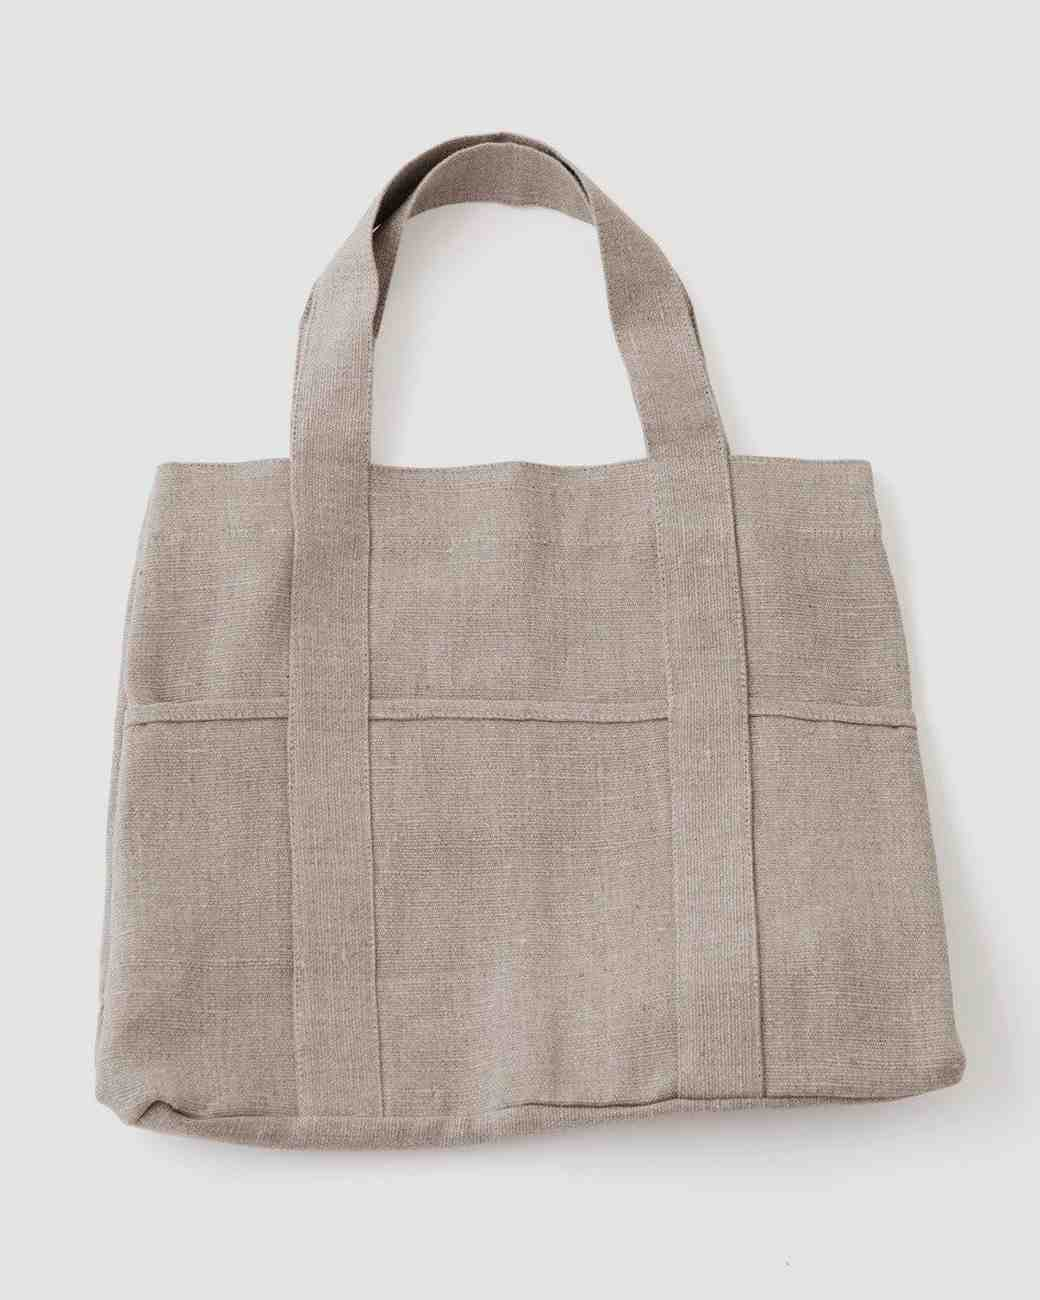 Linen Wedding Anniversary Gifts, Tote